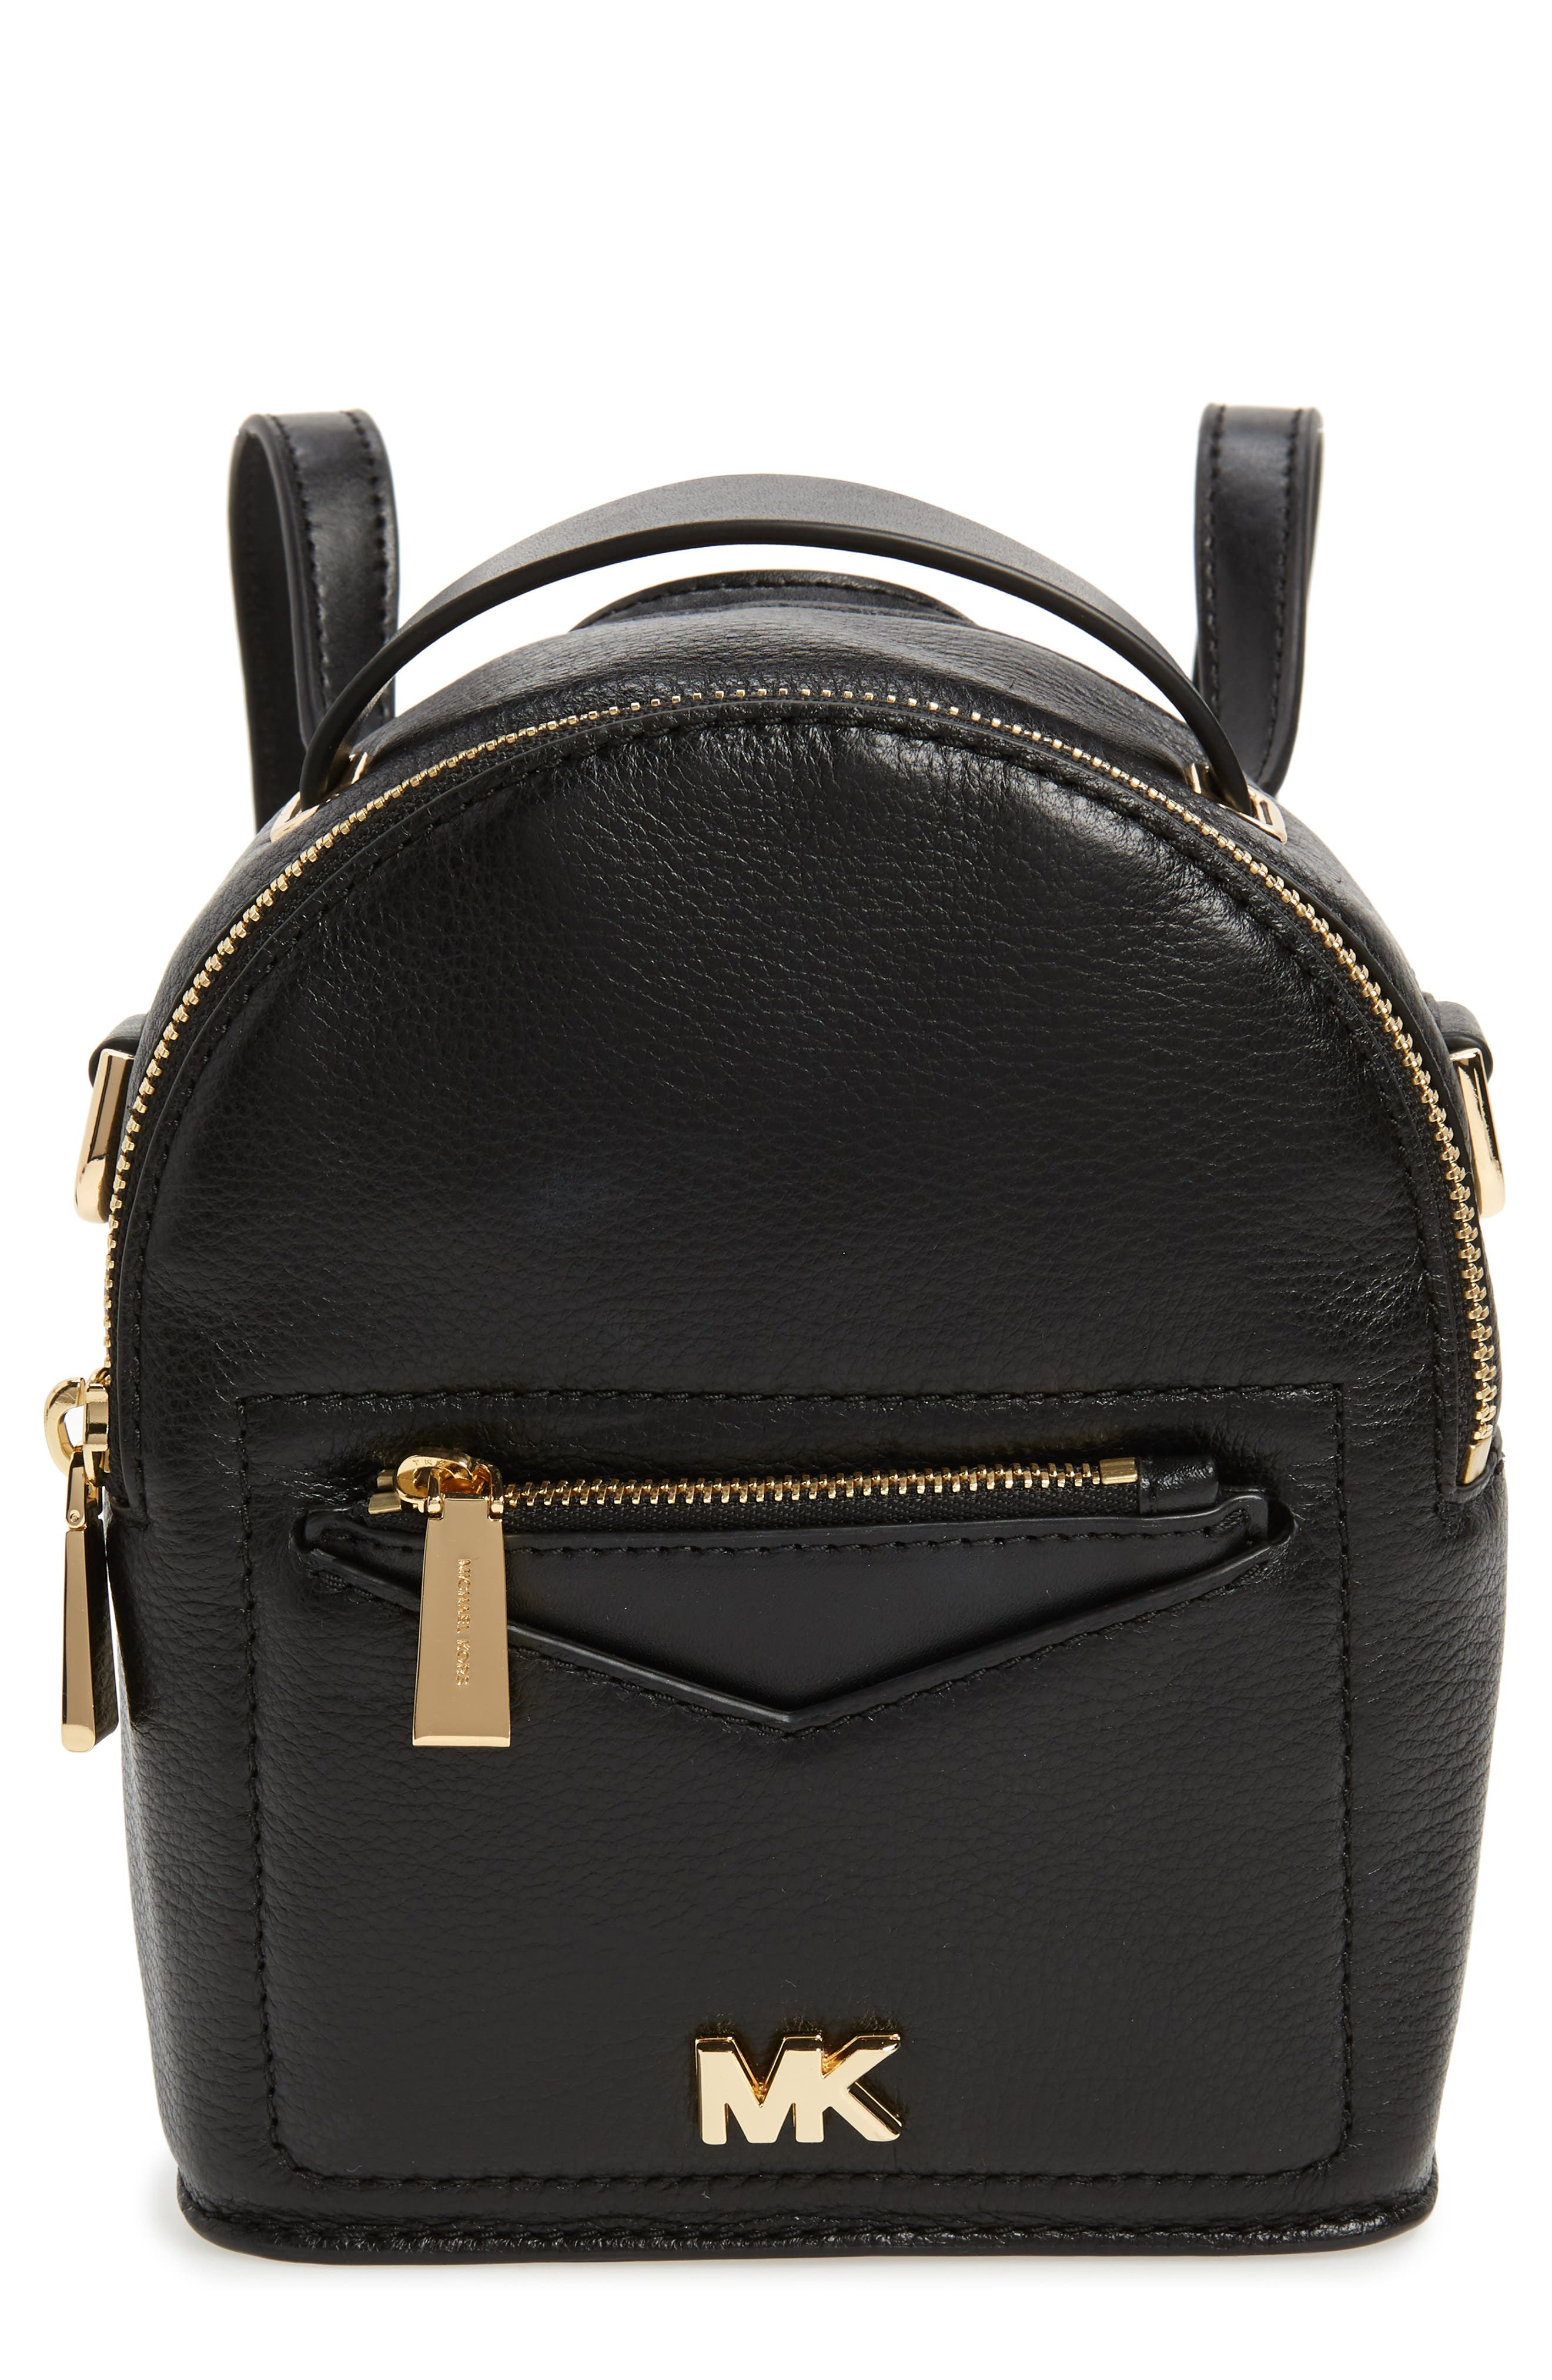 X-Small Convertible Leather Backpack,                             Main thumbnail 1, color,                             Black